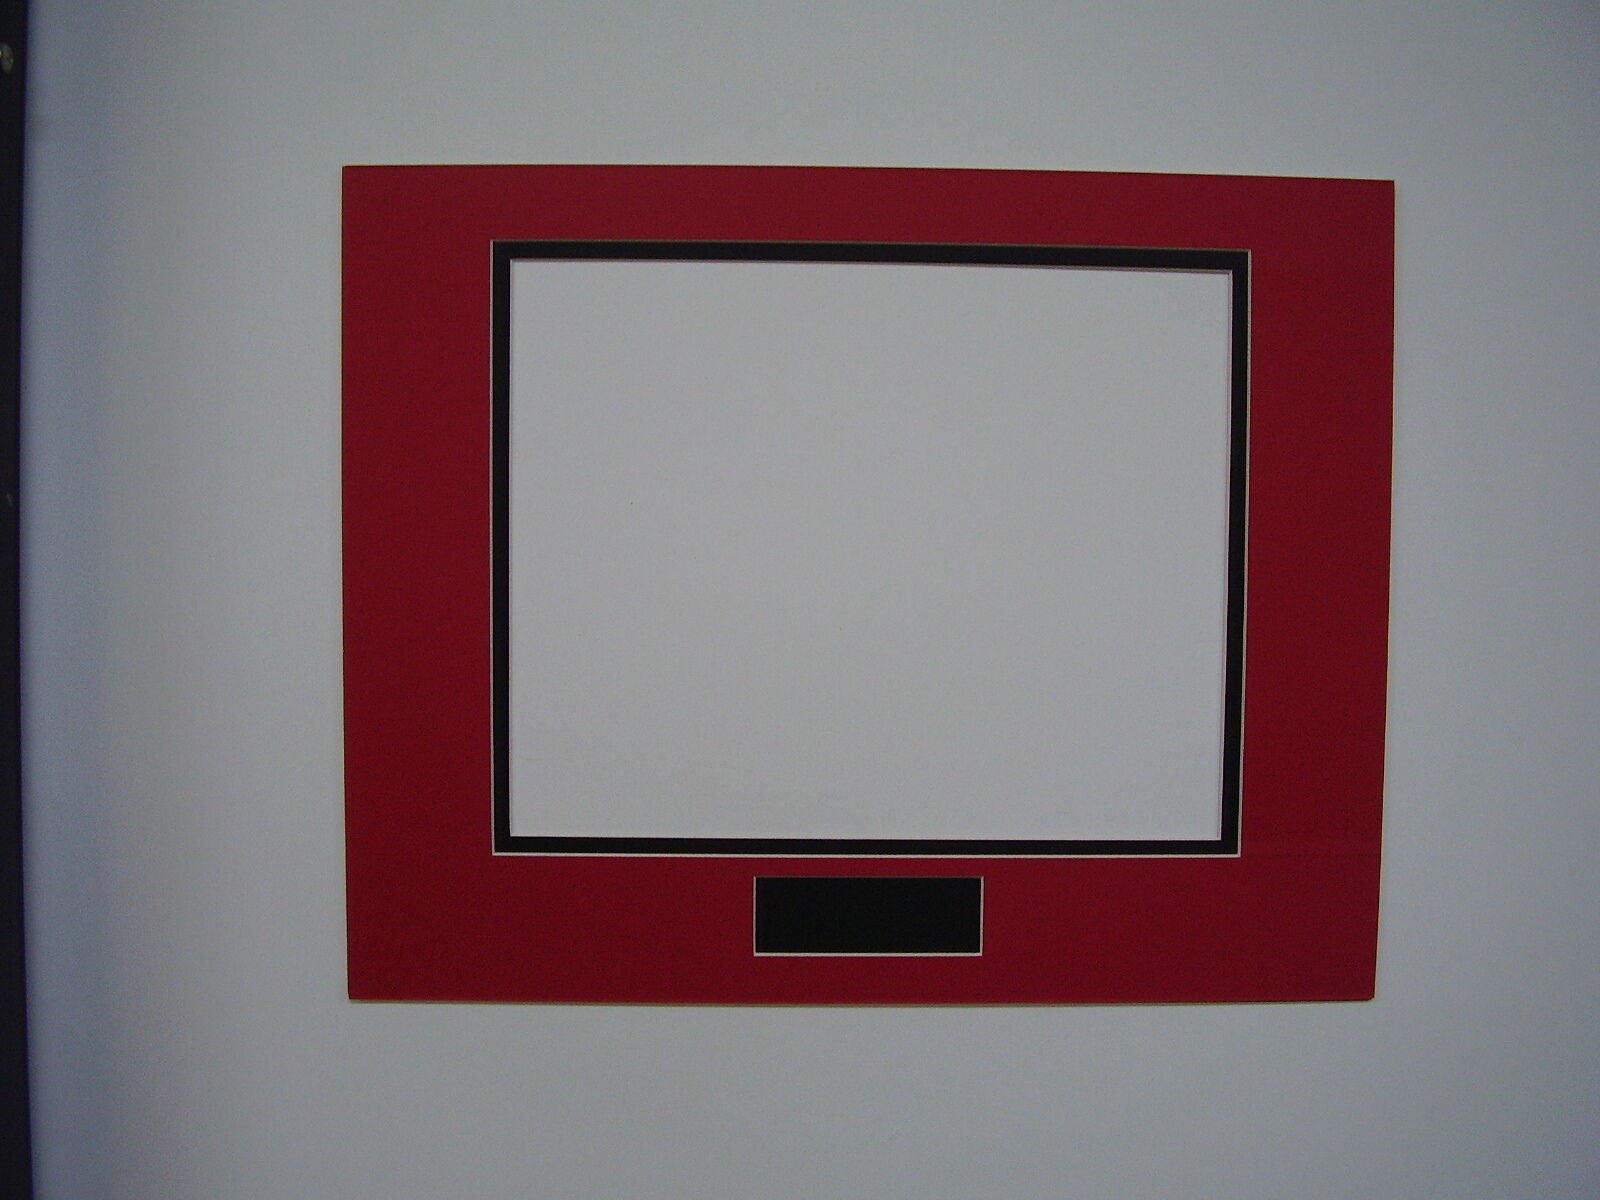 PICTURE FRAME DOUBLE Mat 11x14 for 8x10 photo Red with Black liner ...